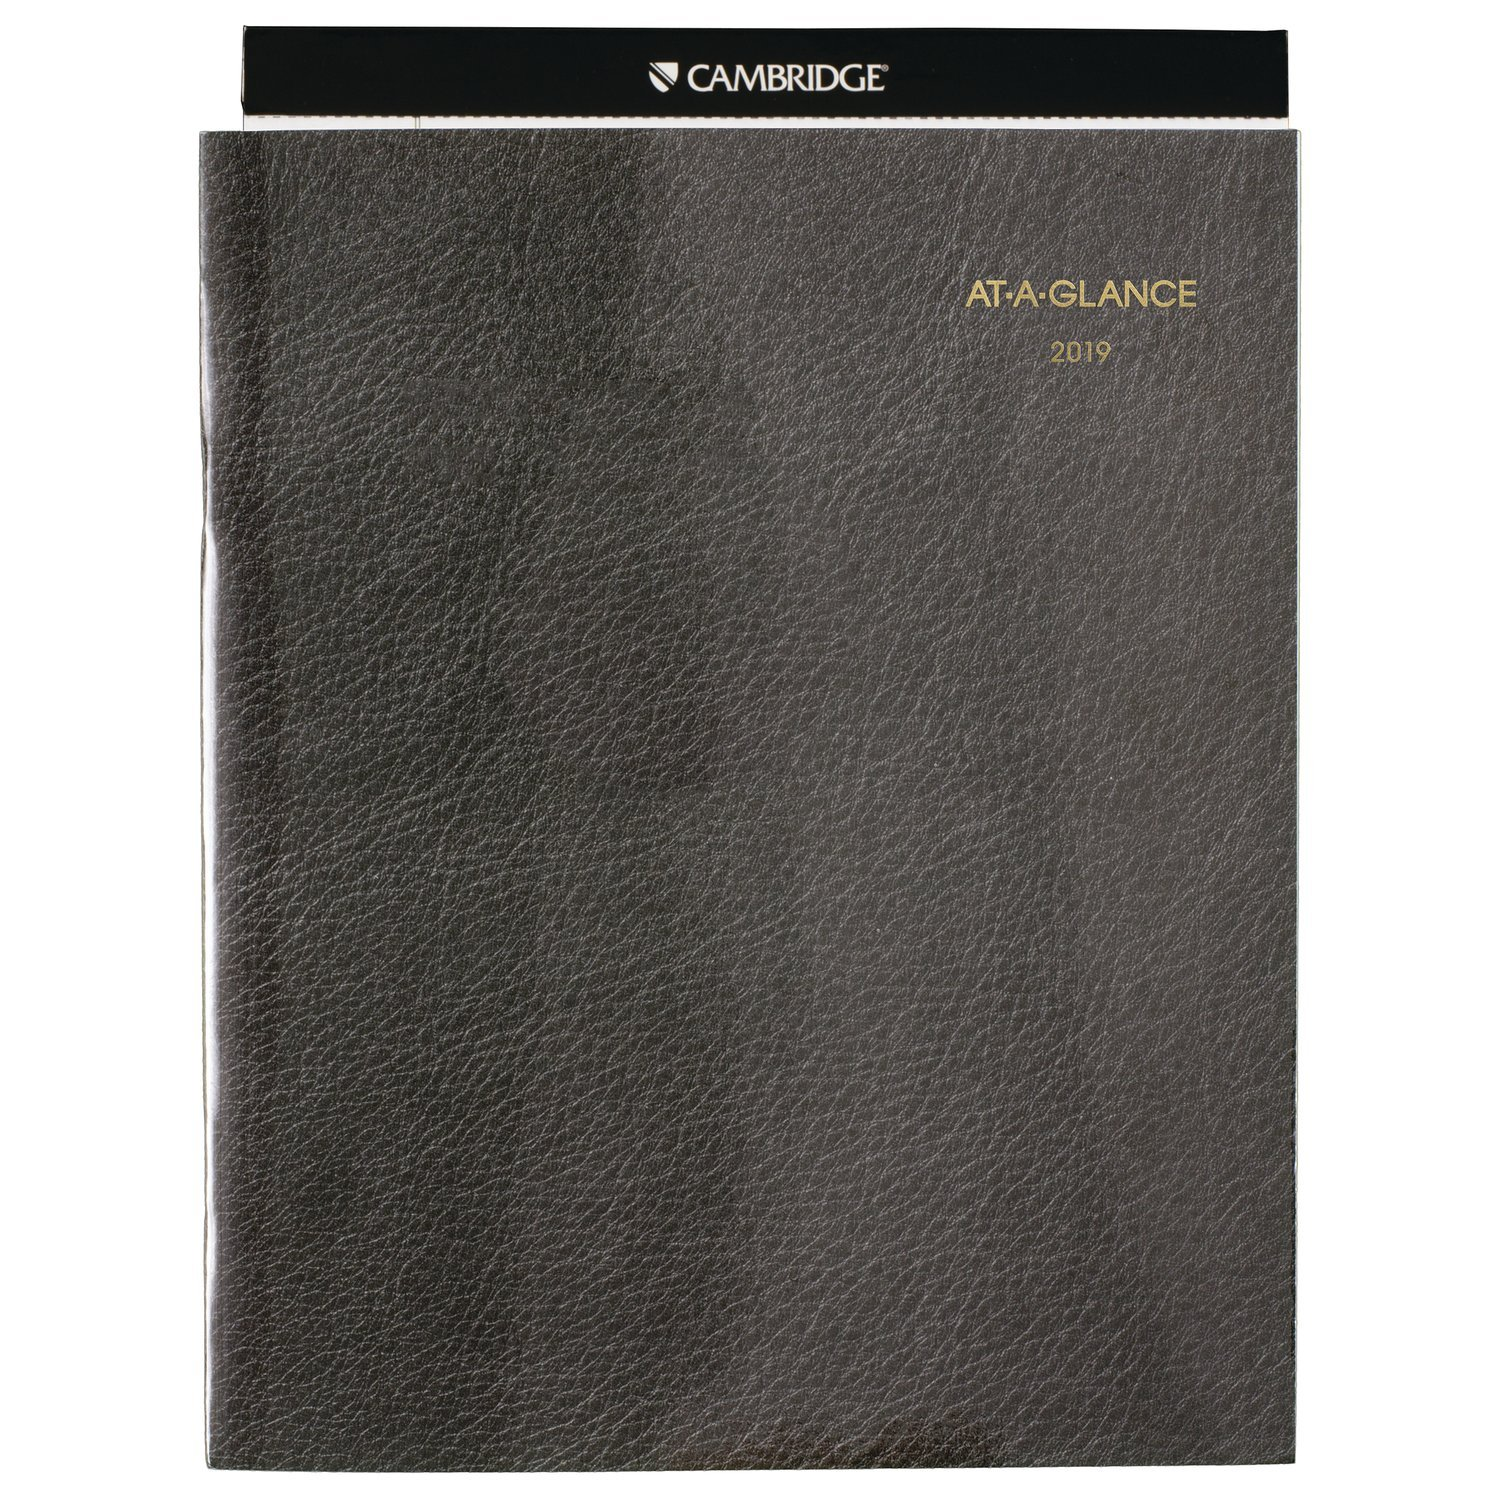 AT-A-GLANCE 2019 Monthly Planner Refill, 9'' x 11'', Large, Executive (7090910)